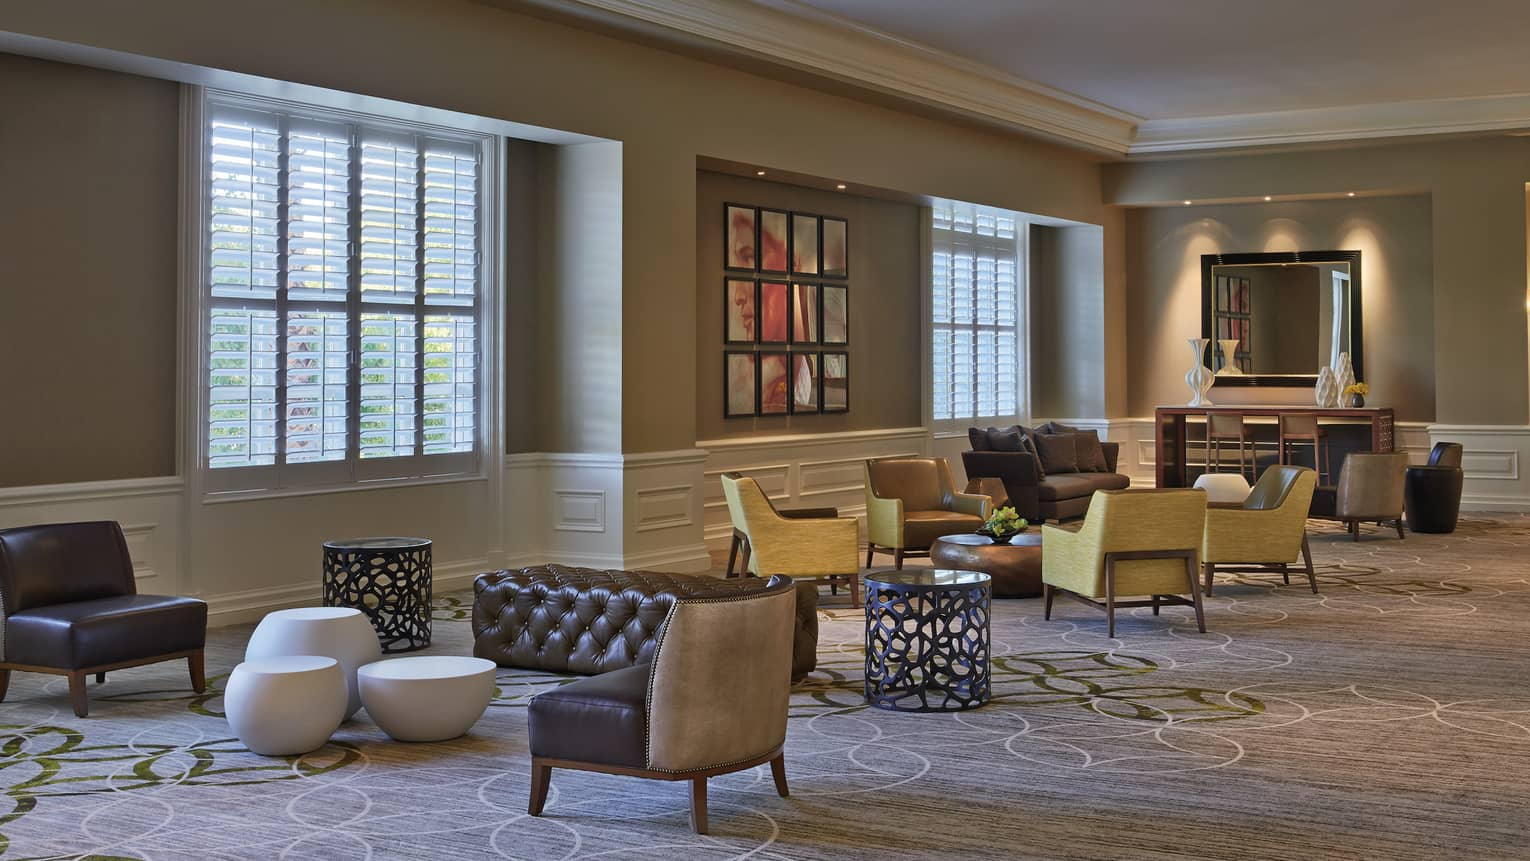 Modern armchairs, ottomans by windows in carpeted Four Seasons Ballroom Foyer